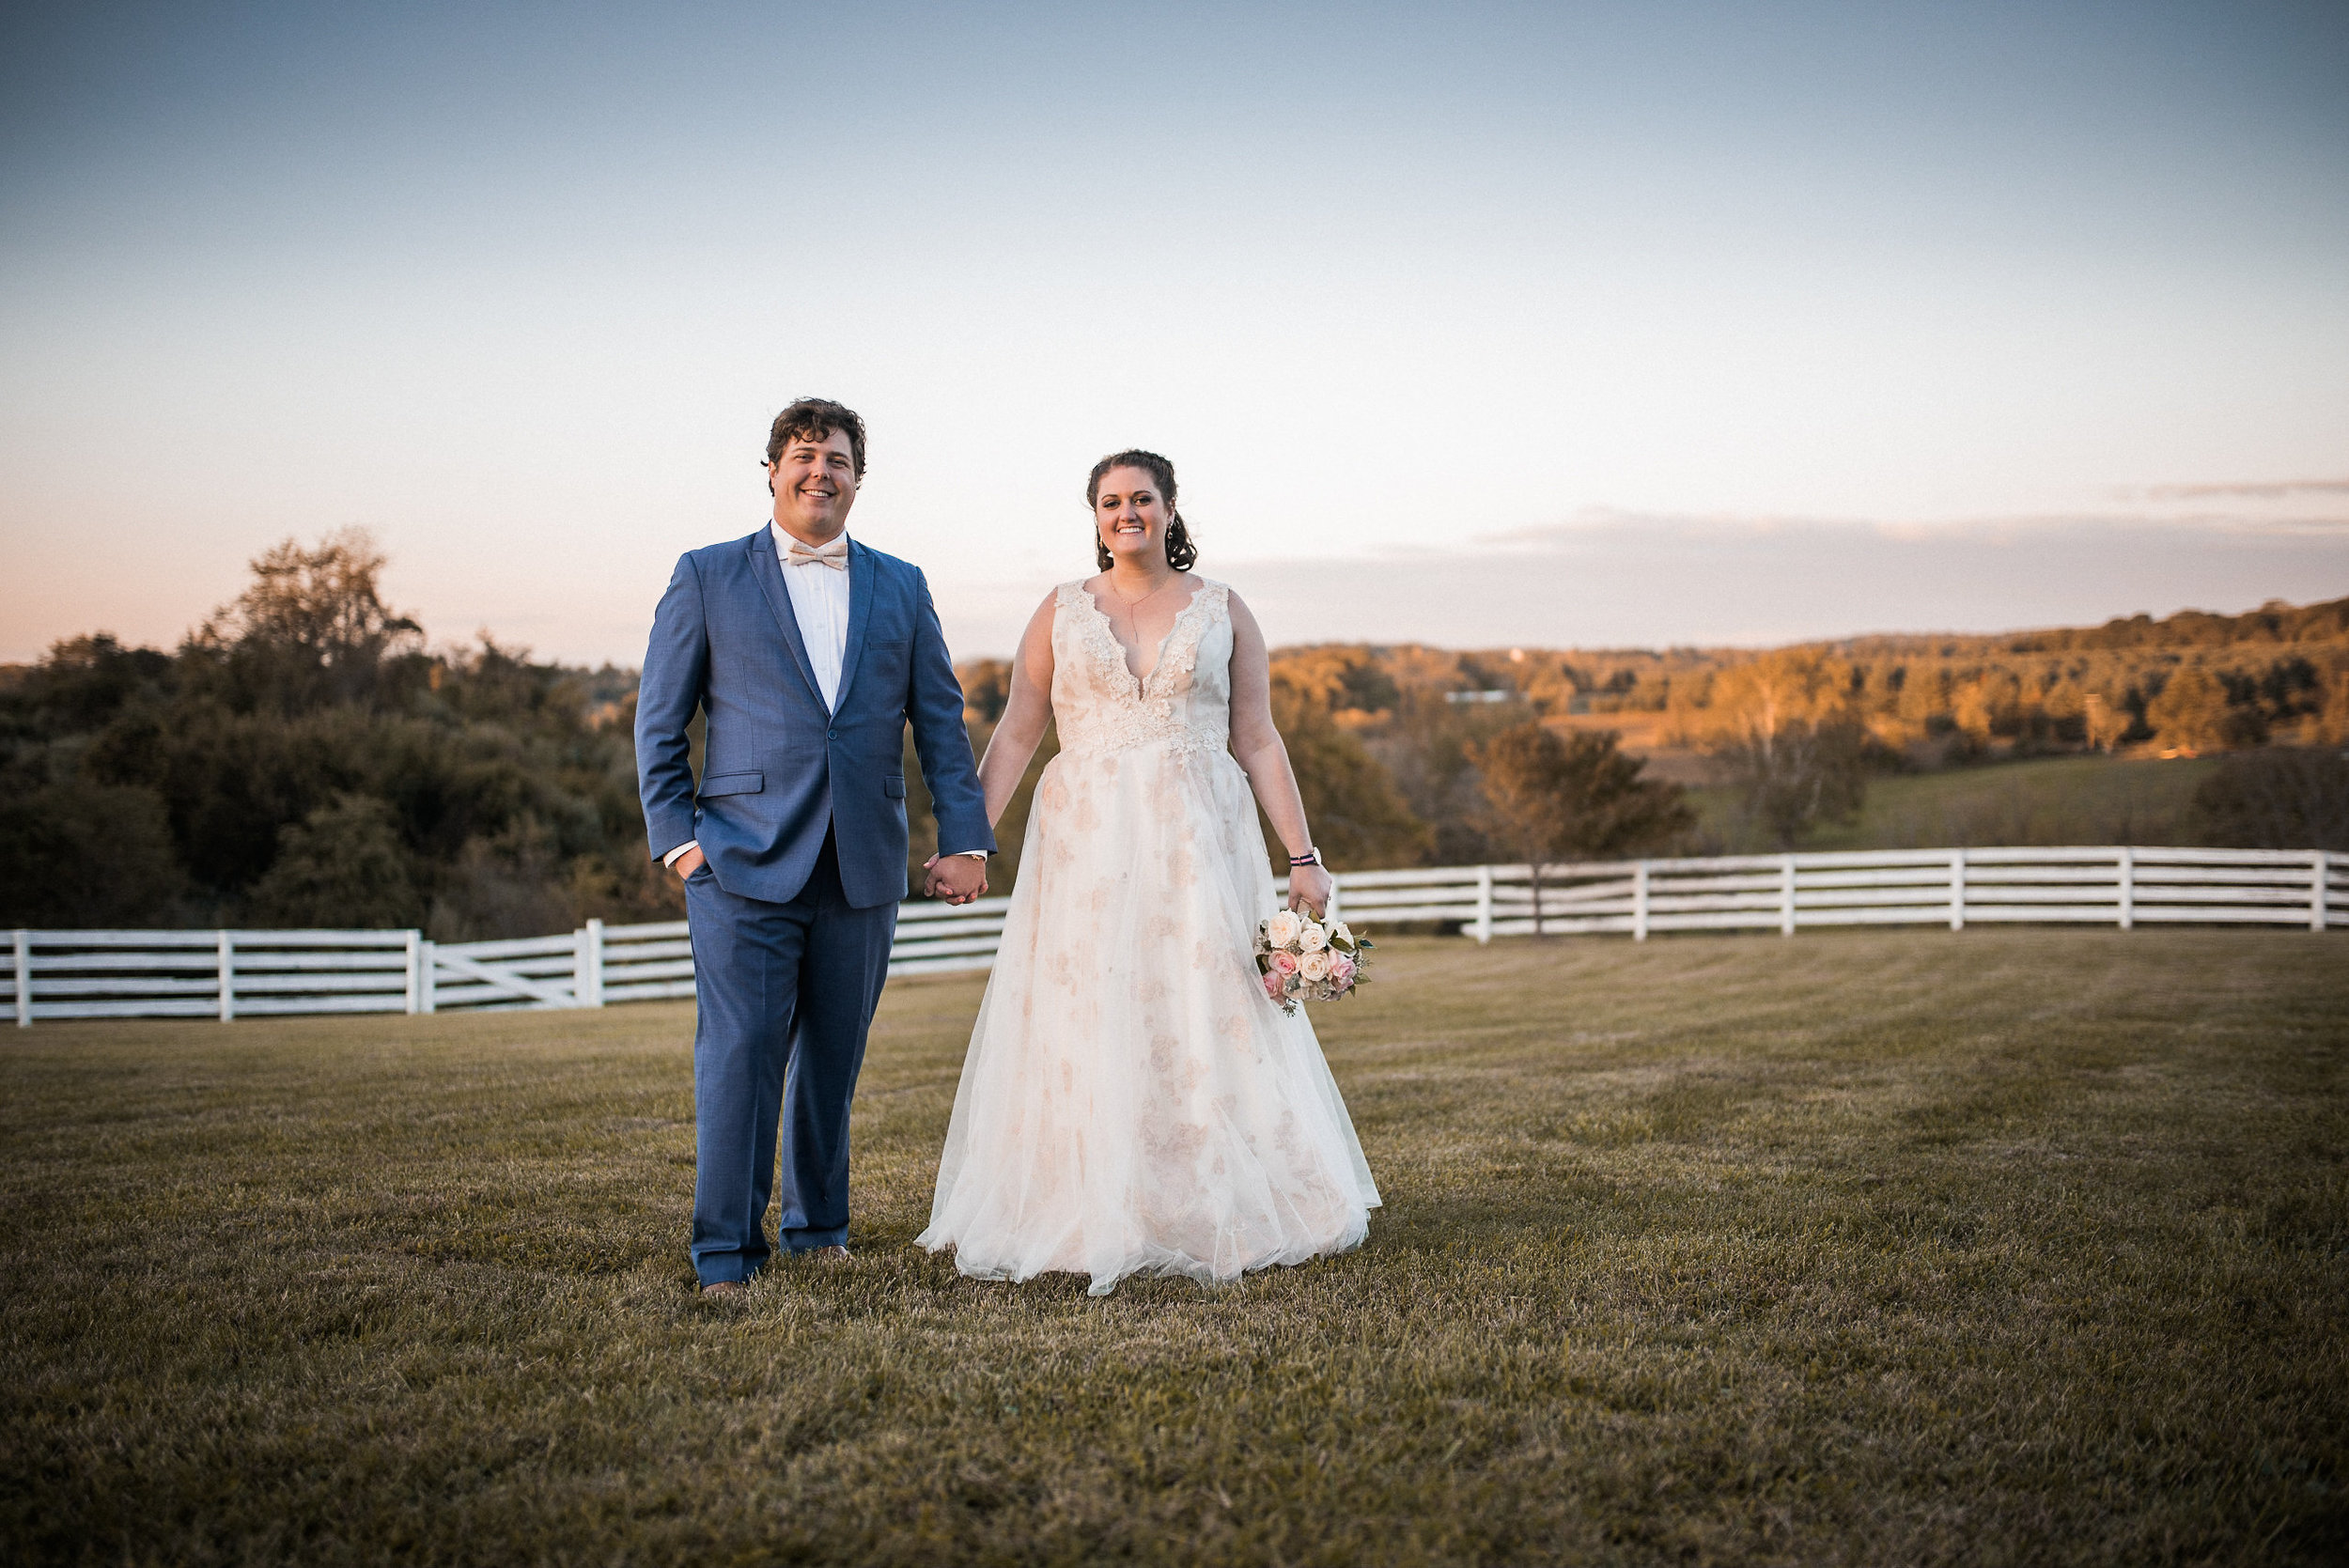 Bride and groom at sunset on farm